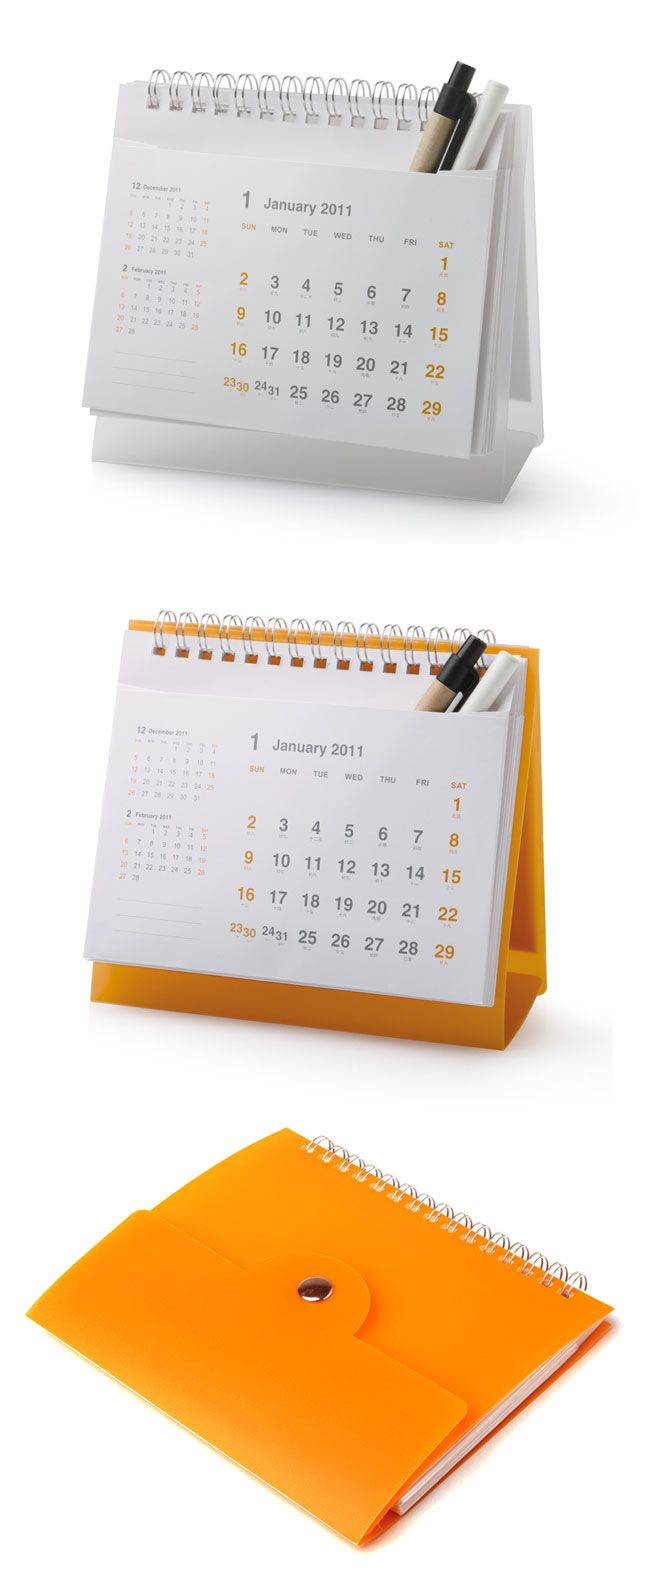 Calendar Ideas For Company : Desk calendar with pocket for pens corporate gifts